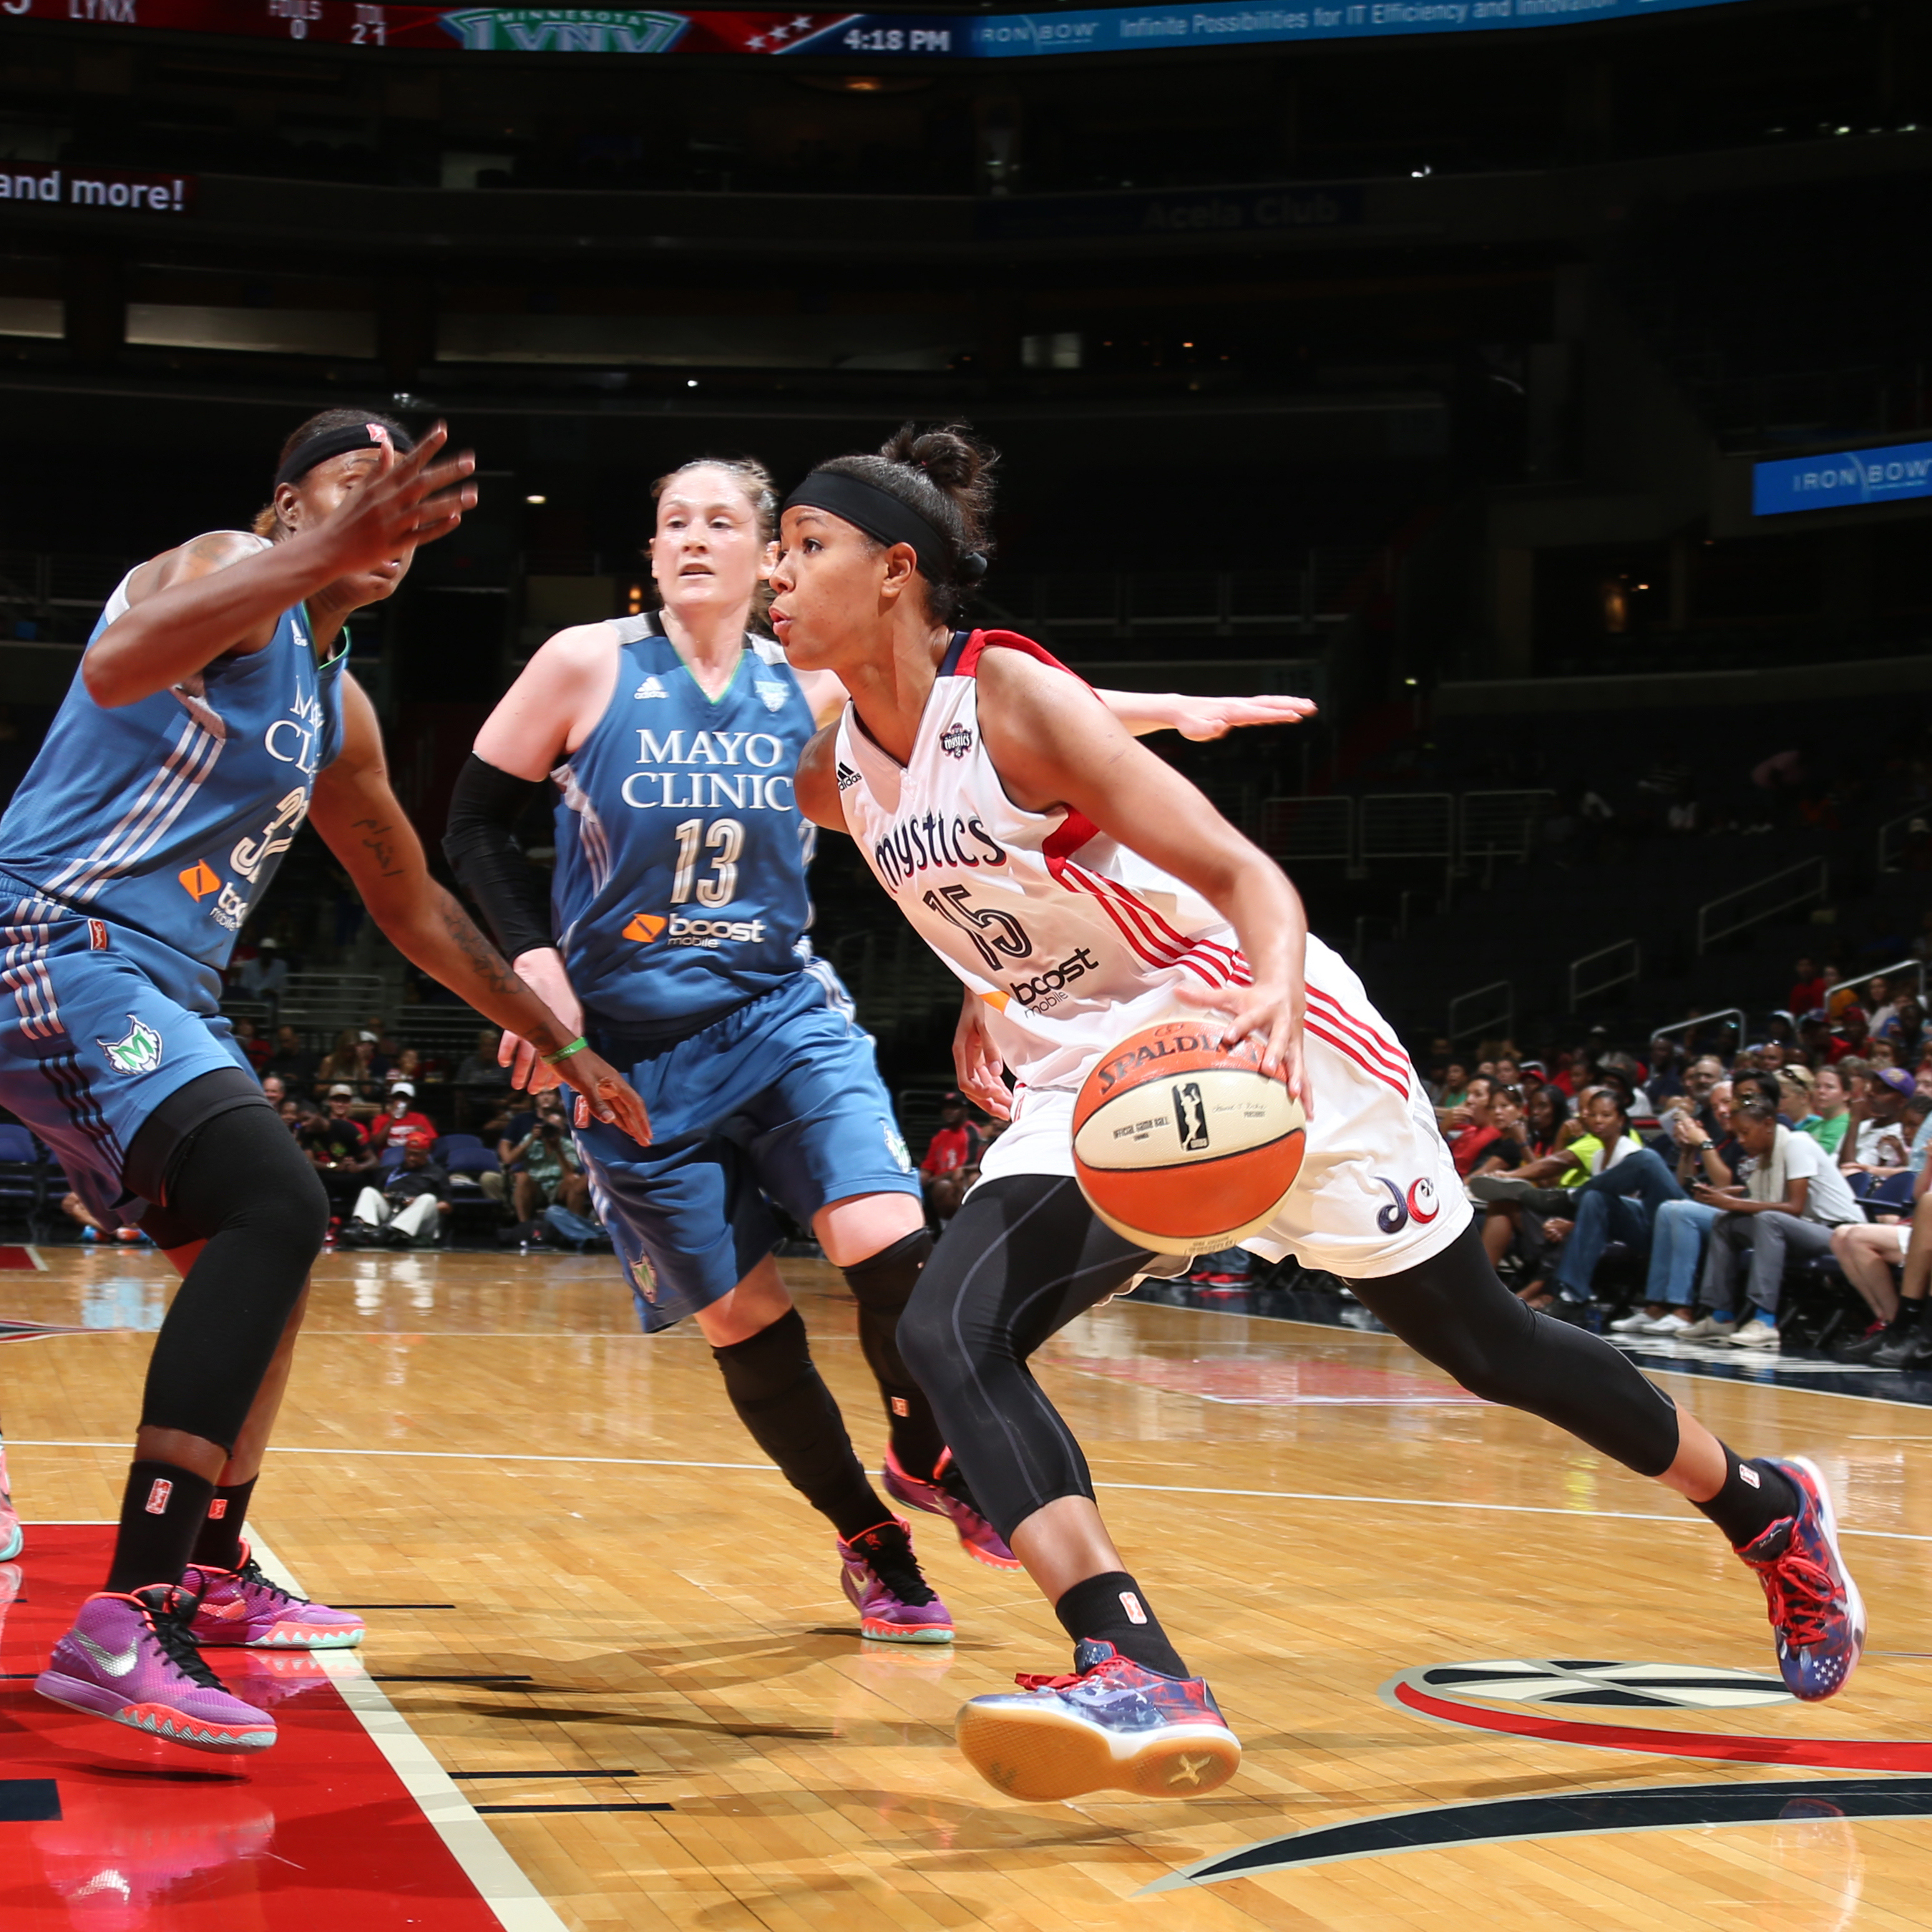 Mystics guard Natasha Cloud had a quiet night in Washington's victory, finishing with just two points, three rebounds and two assists.